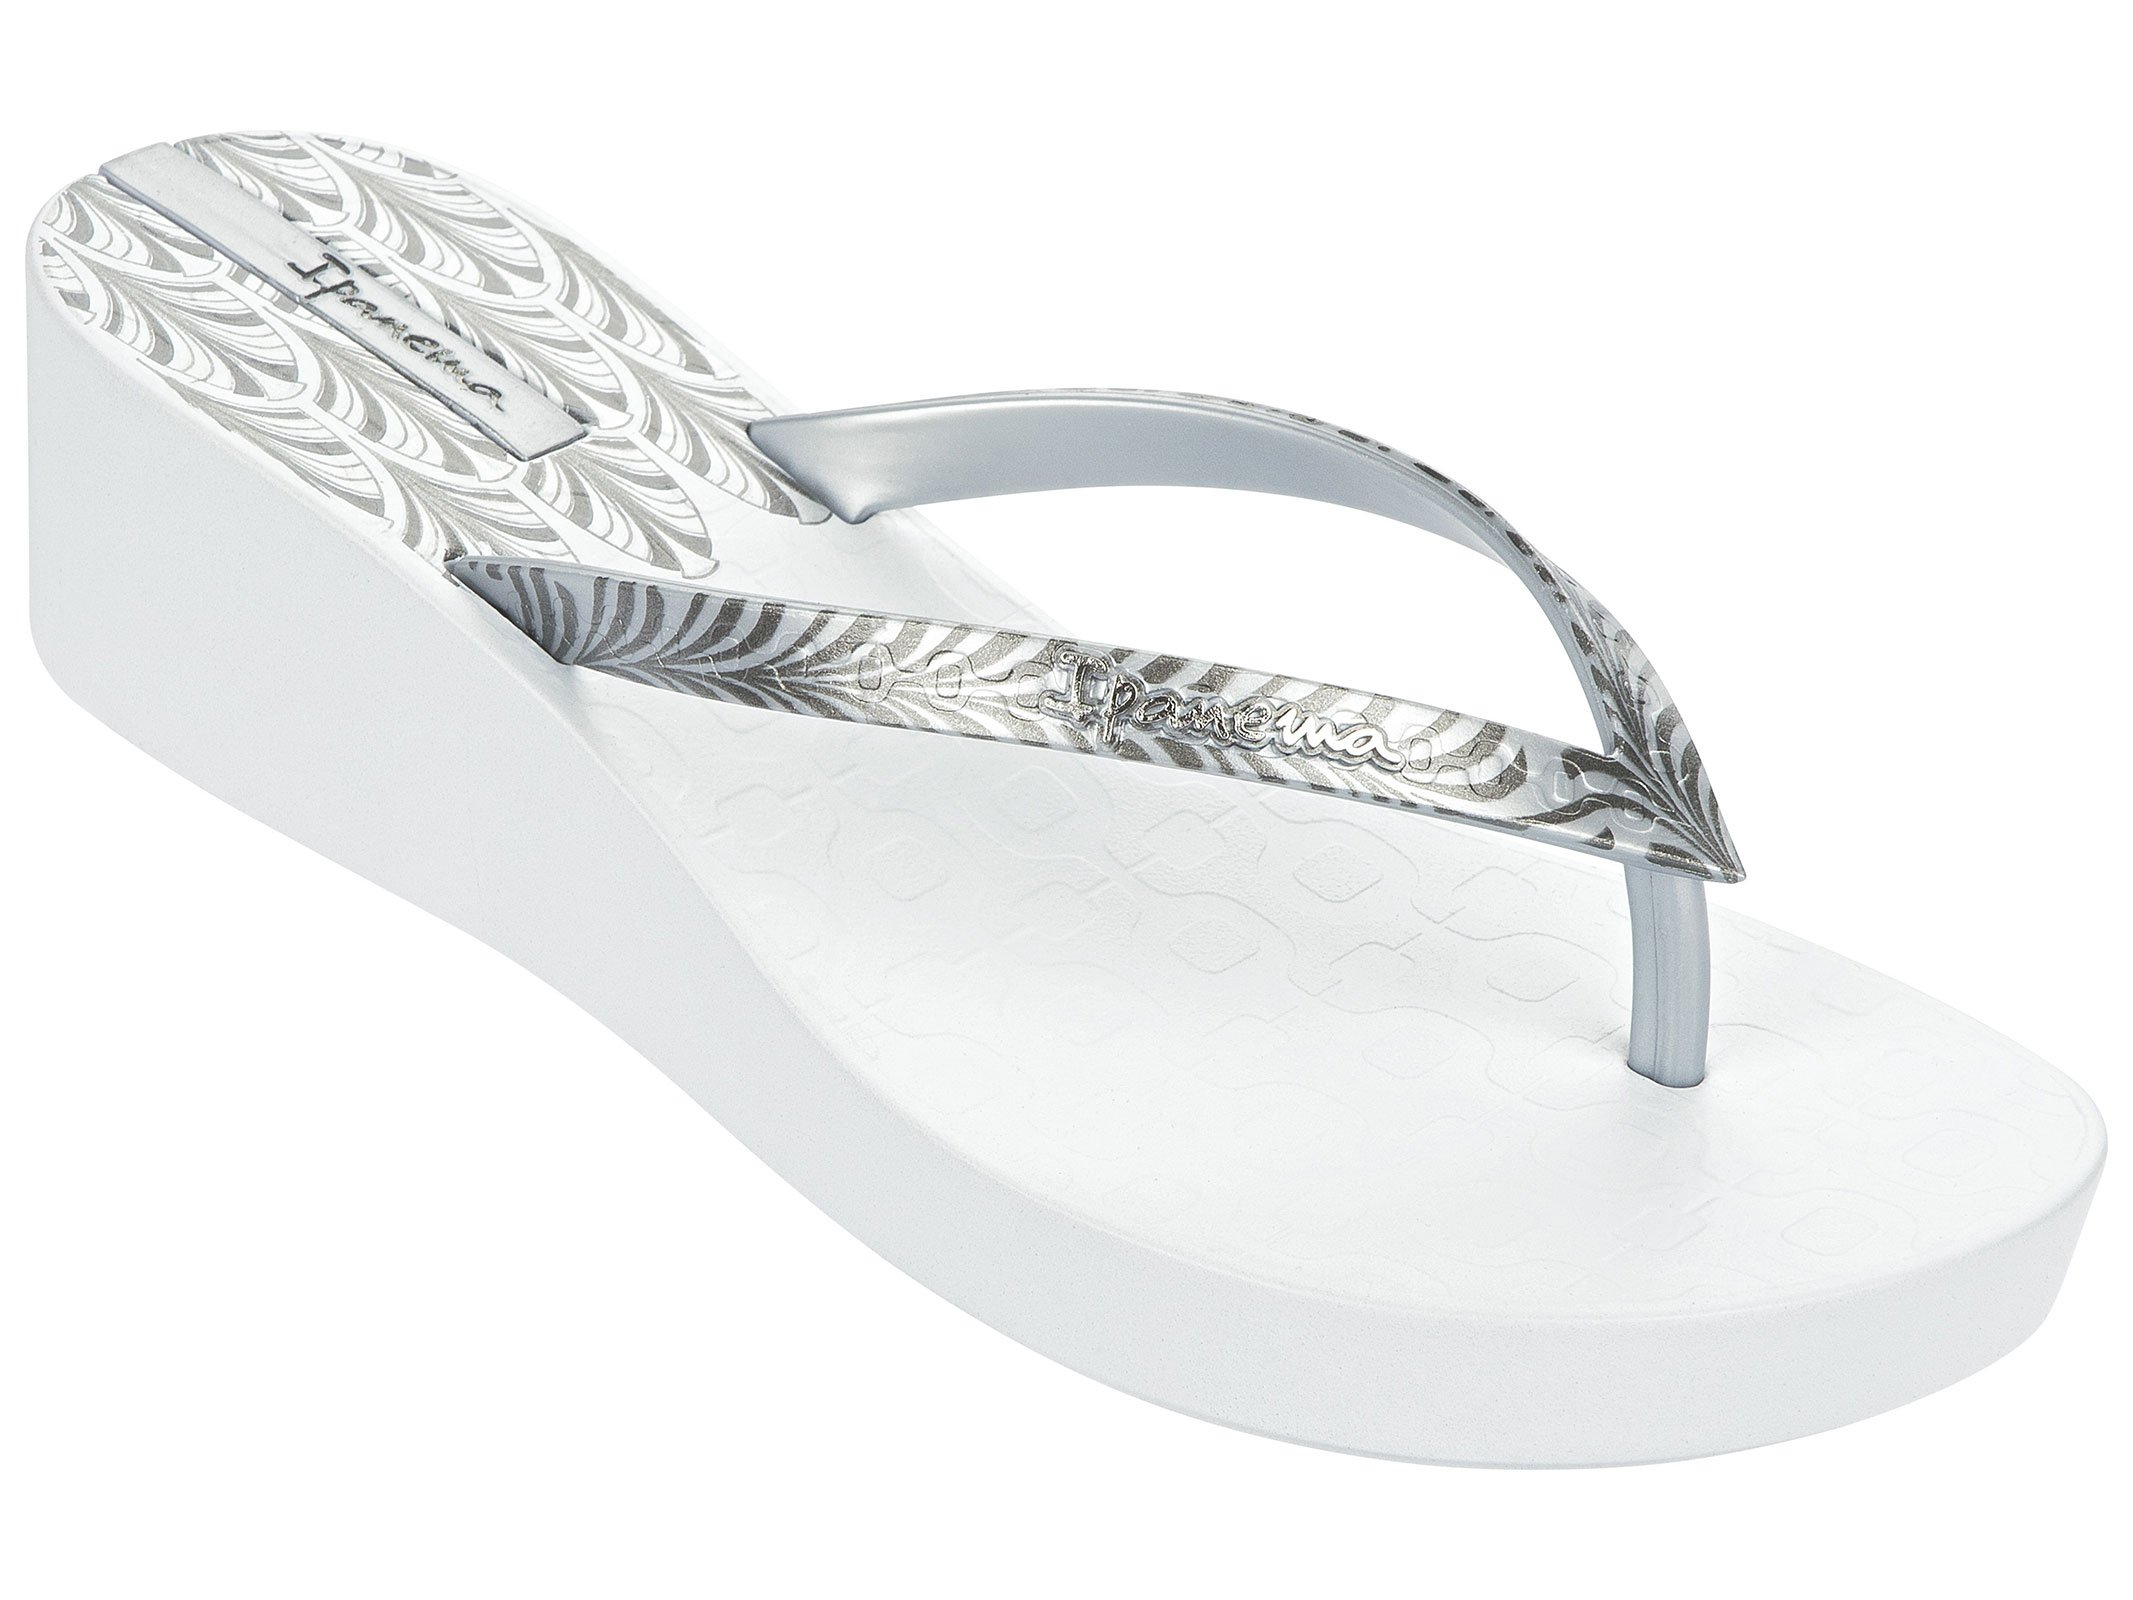 Silver Printed White Wedge Heel Flip-flops - Art Deco - White/silver